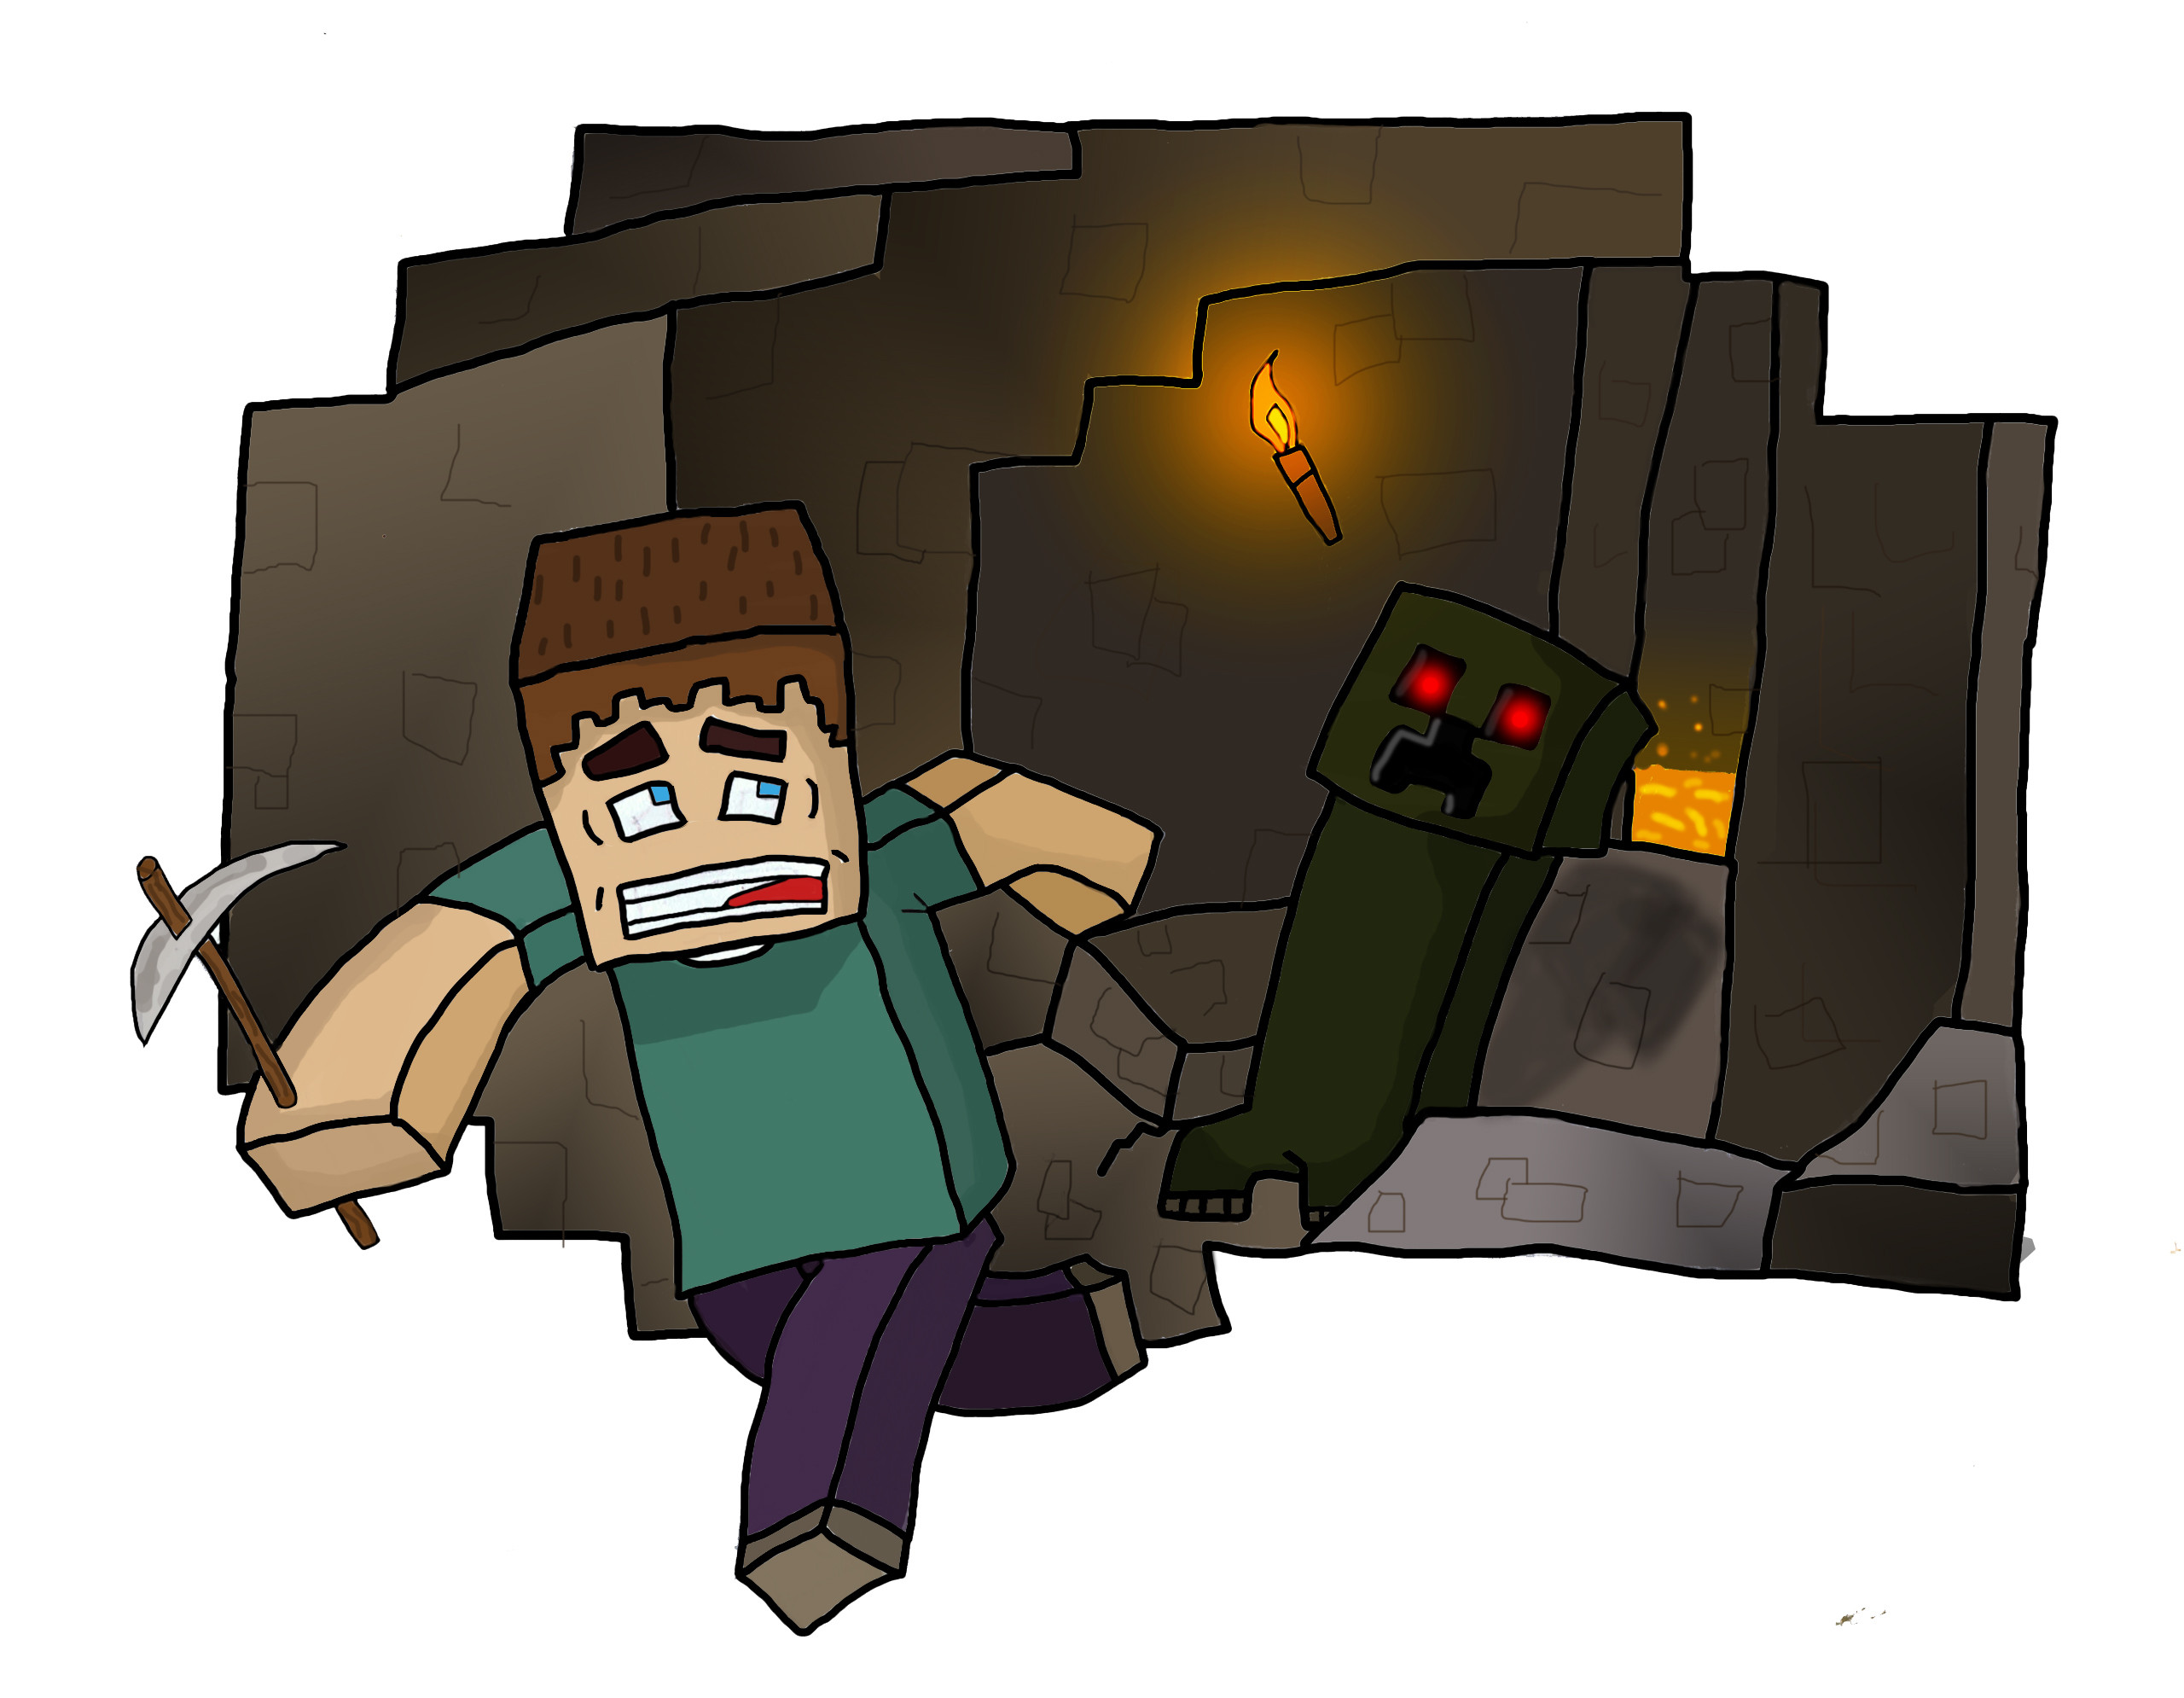 Drawn cavern minecraft View cave topic Minecraft drawing